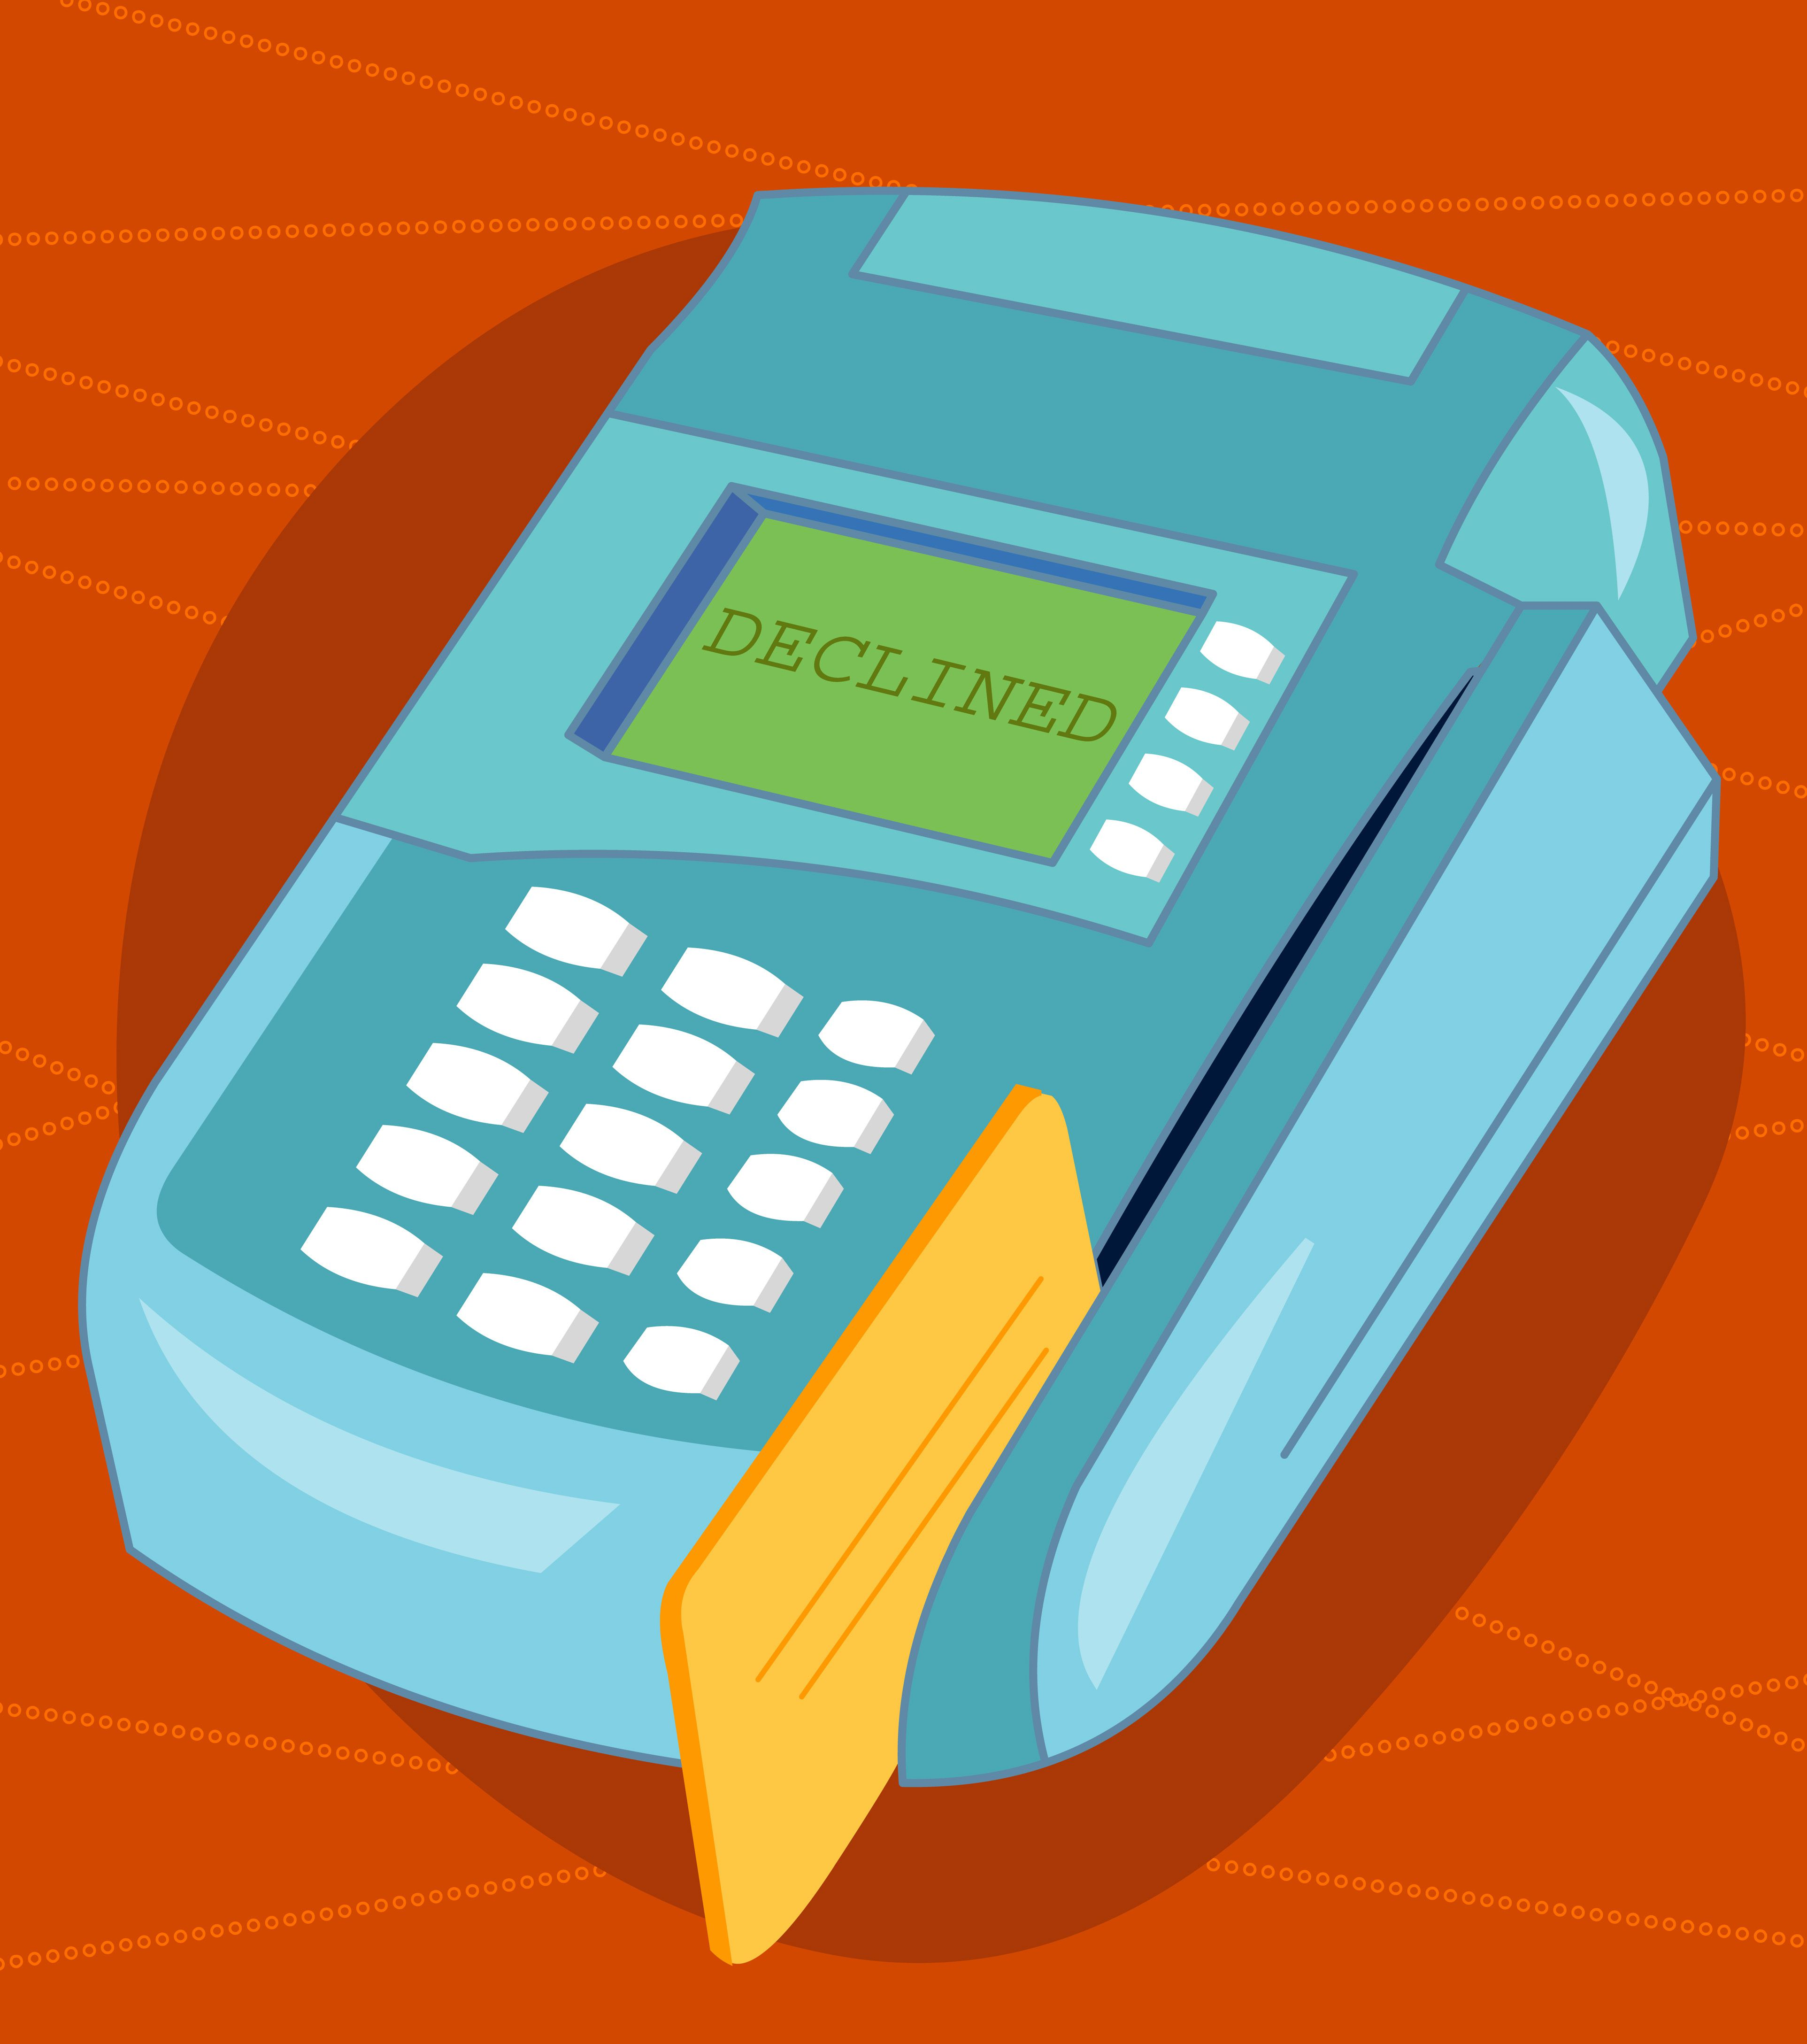 declined message on credit card reader AA039341 5723789e3df78c5640ef0b68